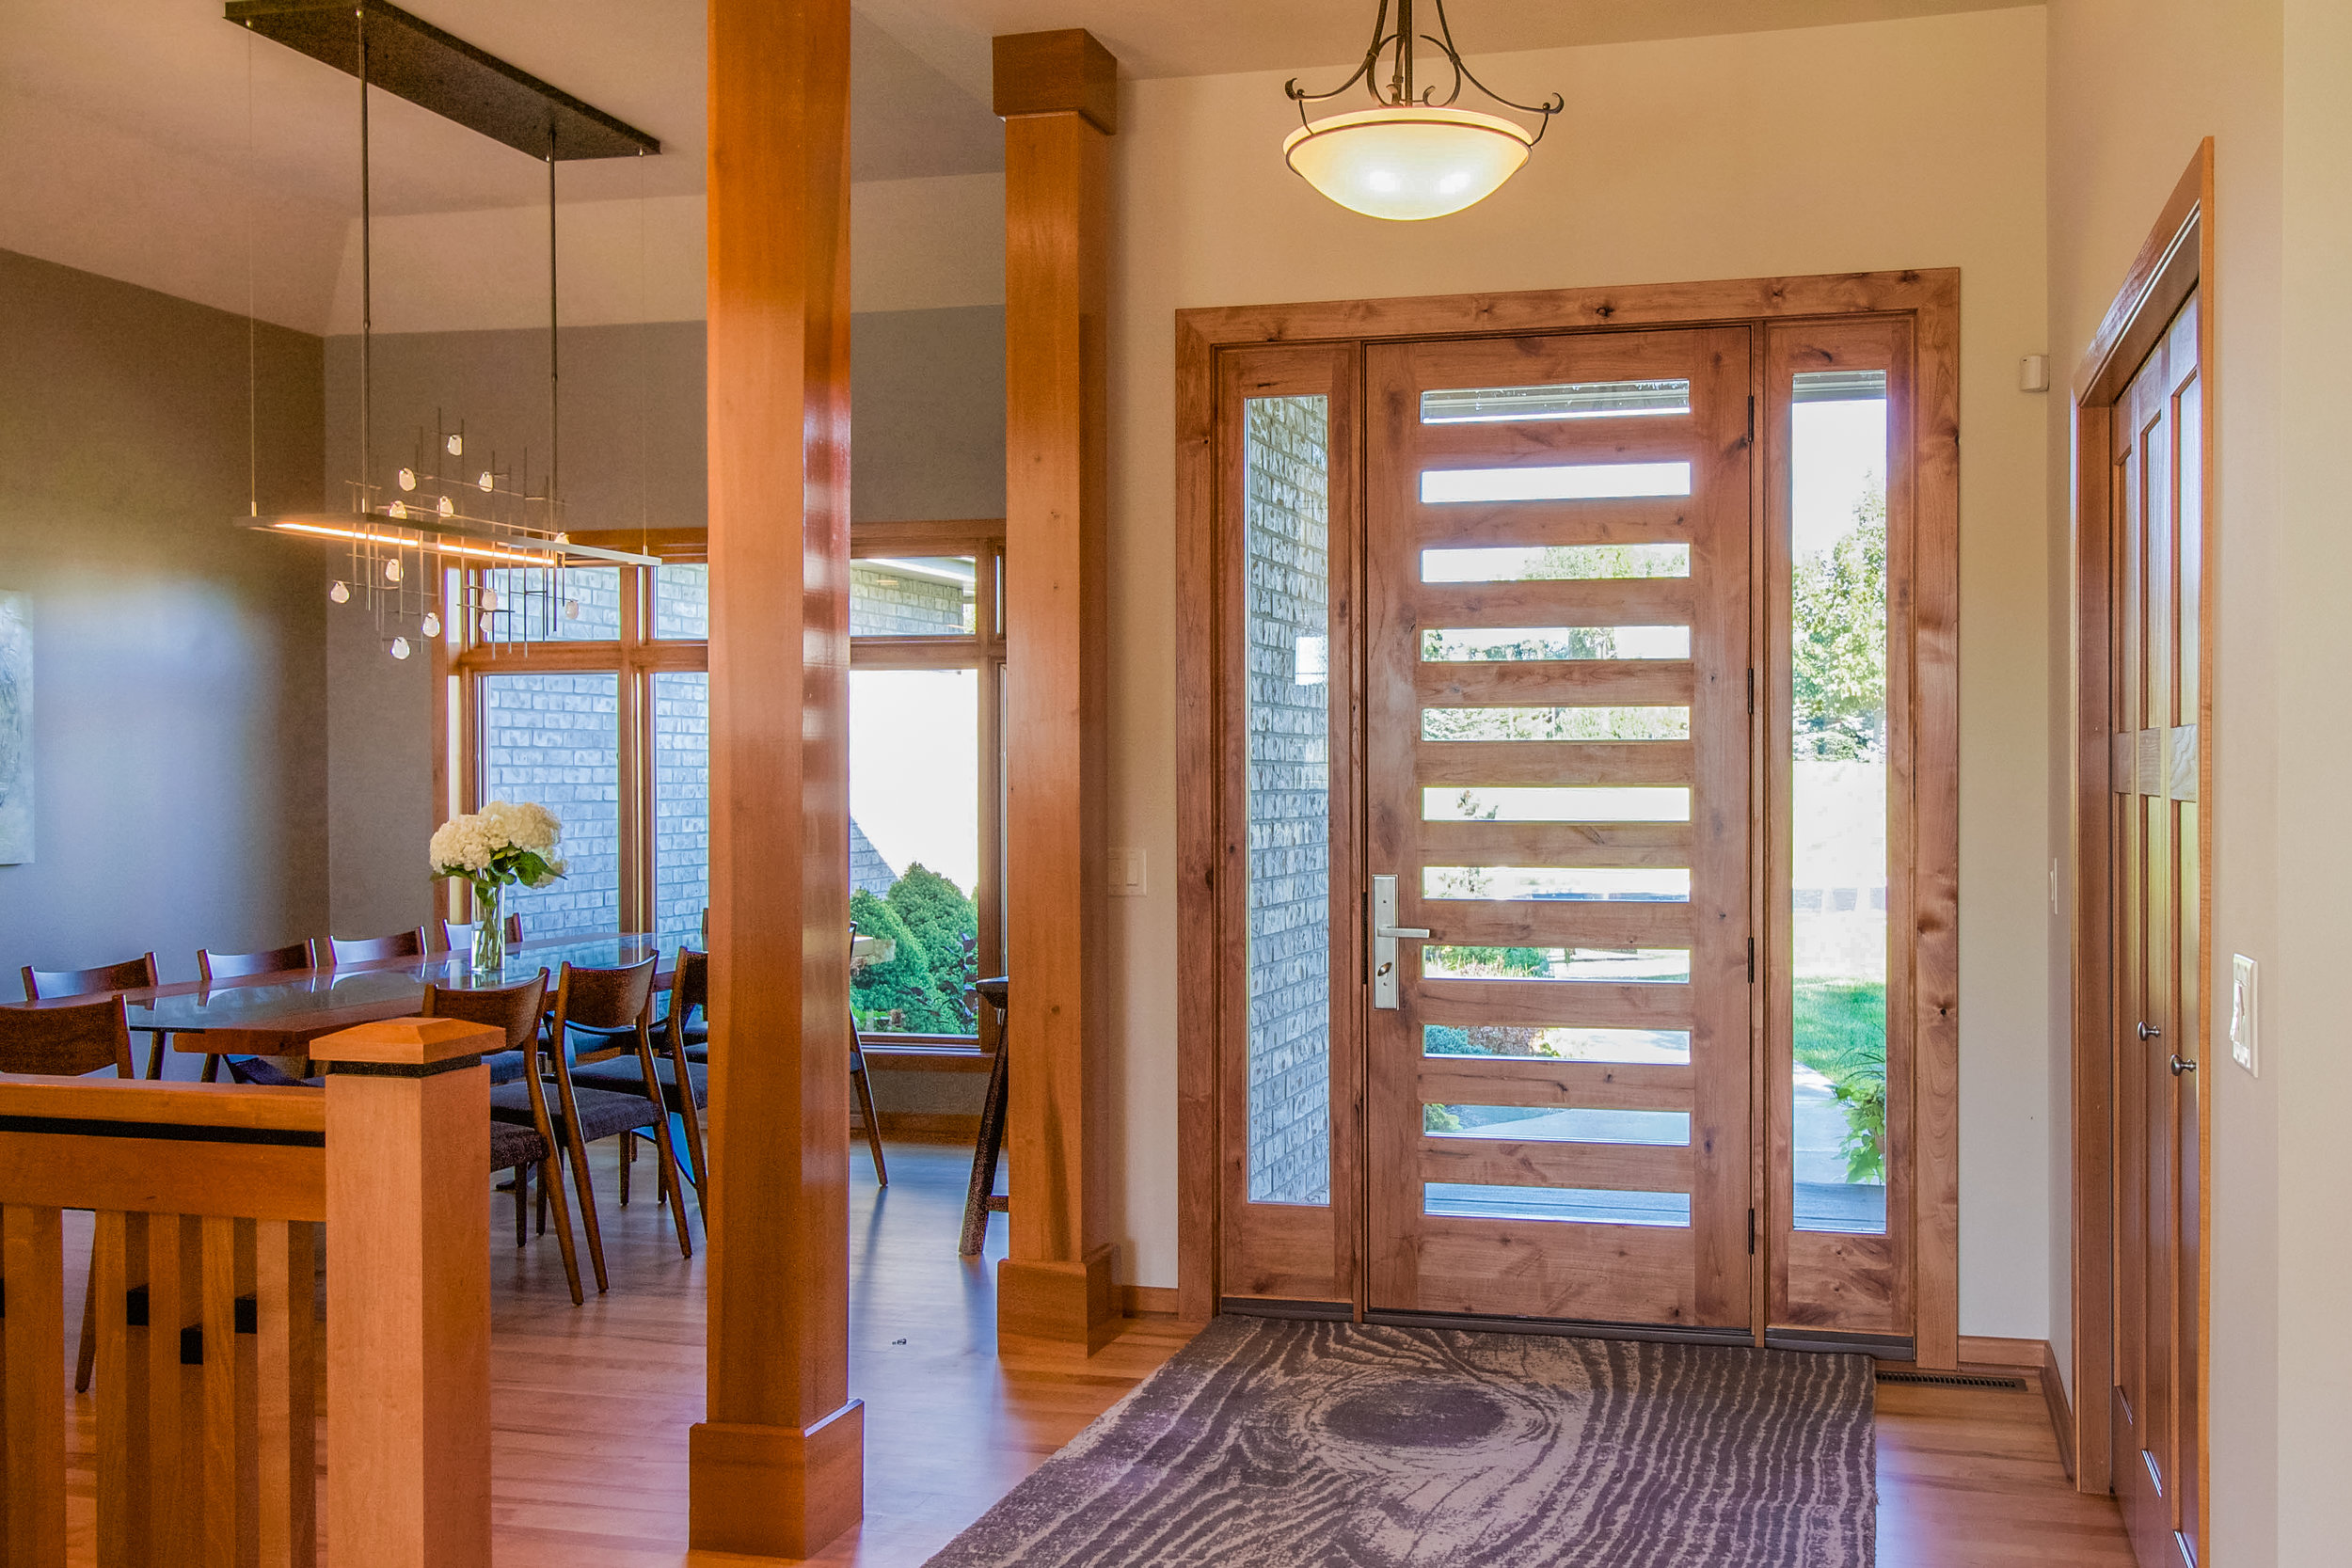 - This contemporary wood door by Jeld-Wen was installed to transform the style of the home from ordinary to extraordinary. To learn more about the transformation in other areas of the home, follow the photo link.